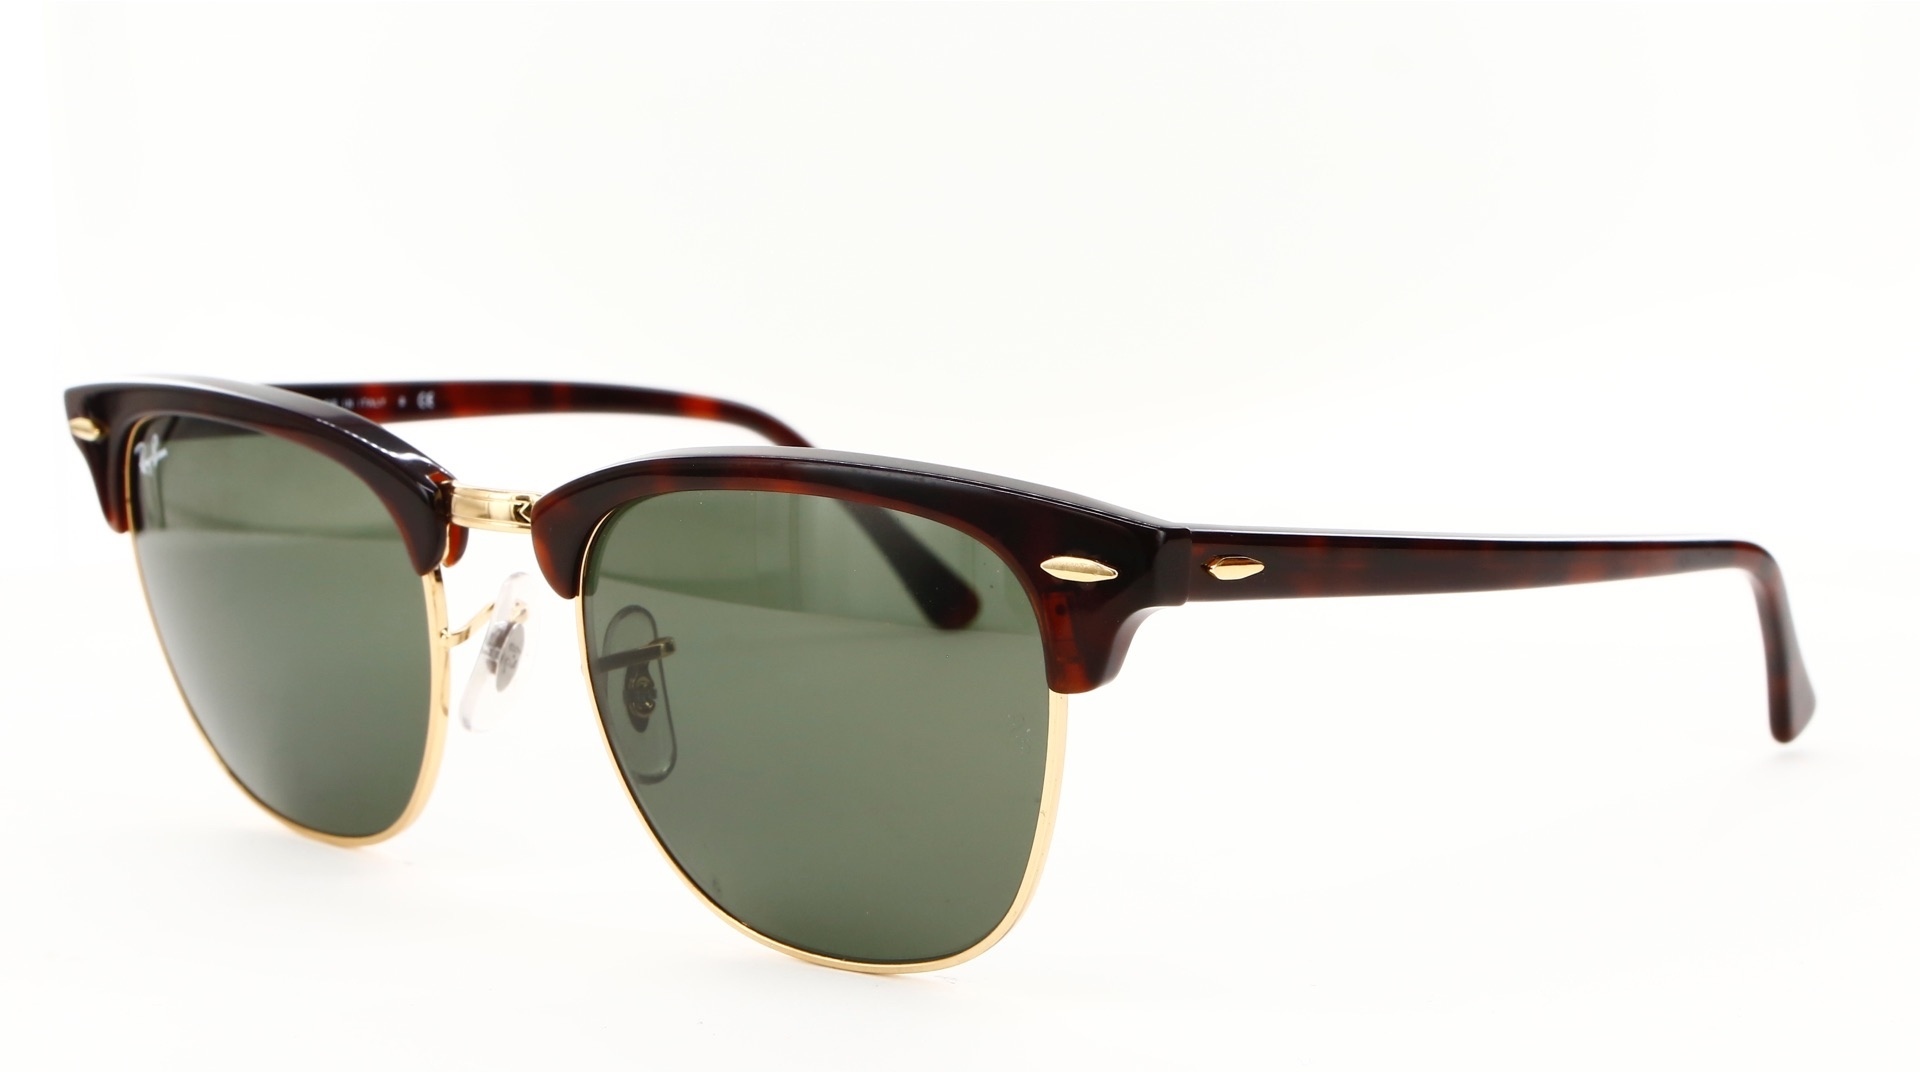 Ray-Ban - ref: 58105